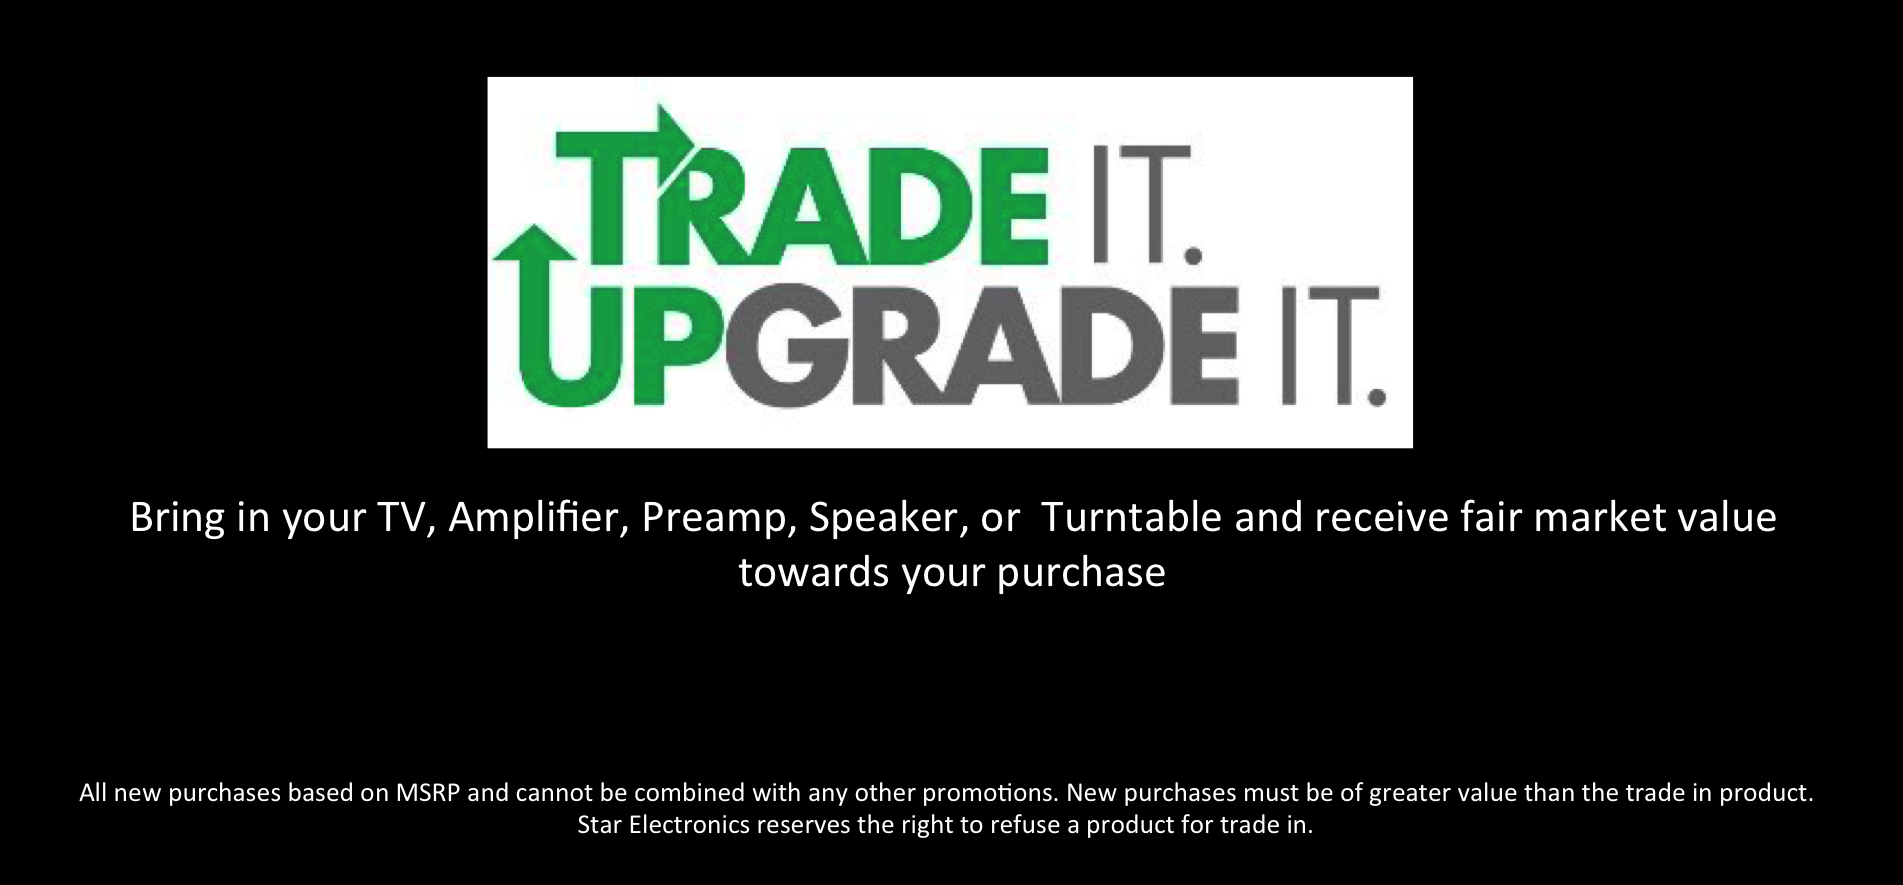 Trade it Upgrade it